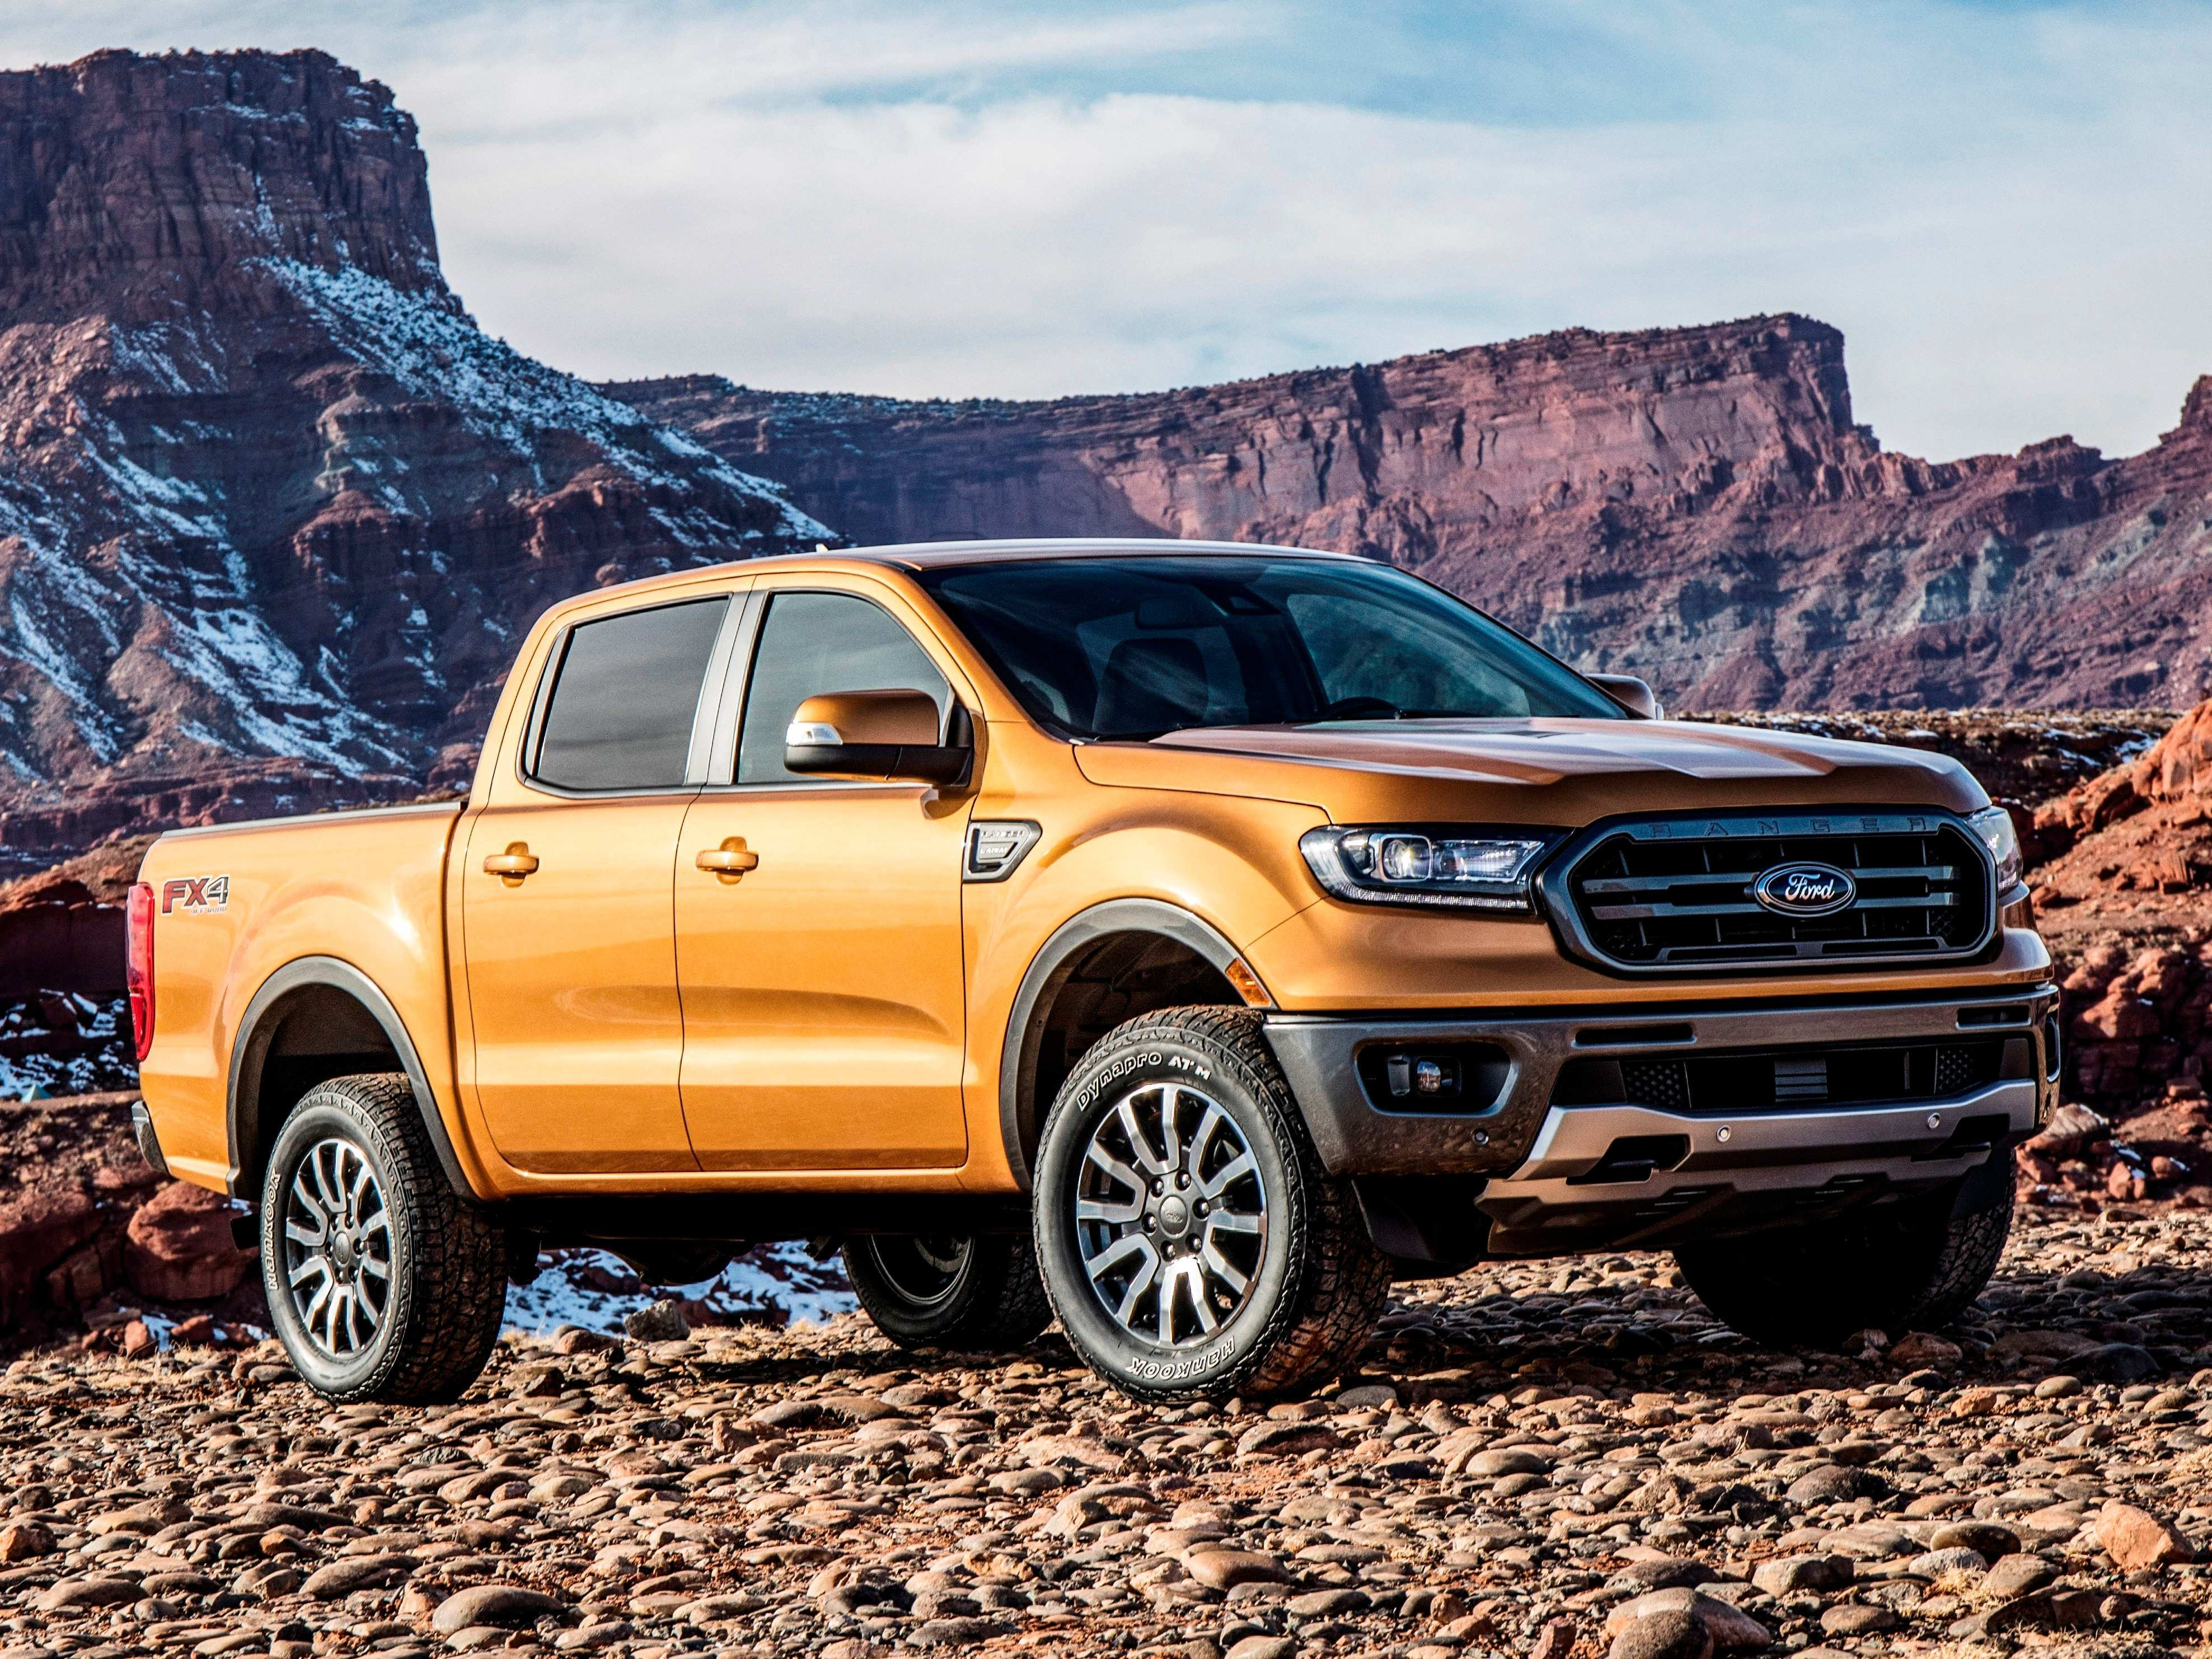 28 Gallery of Best Ford Ranger 2019 Canada First Drive New Concept for Best Ford Ranger 2019 Canada First Drive